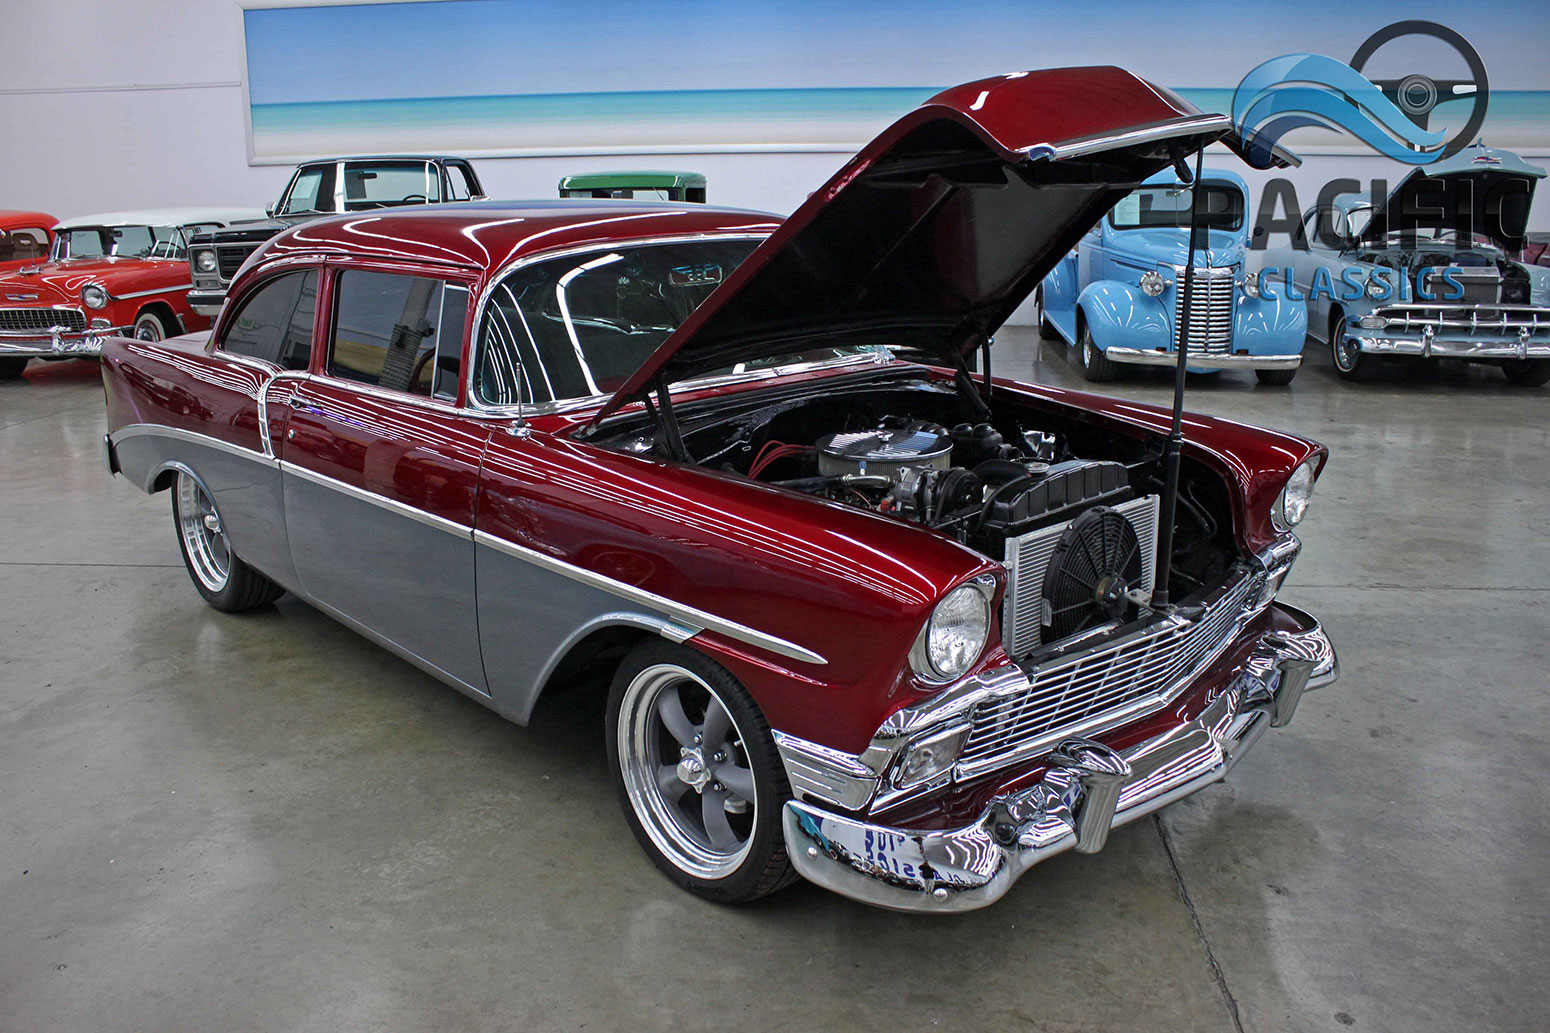 1956 Chevrolet 2 Door Post 454 Pacific Classics